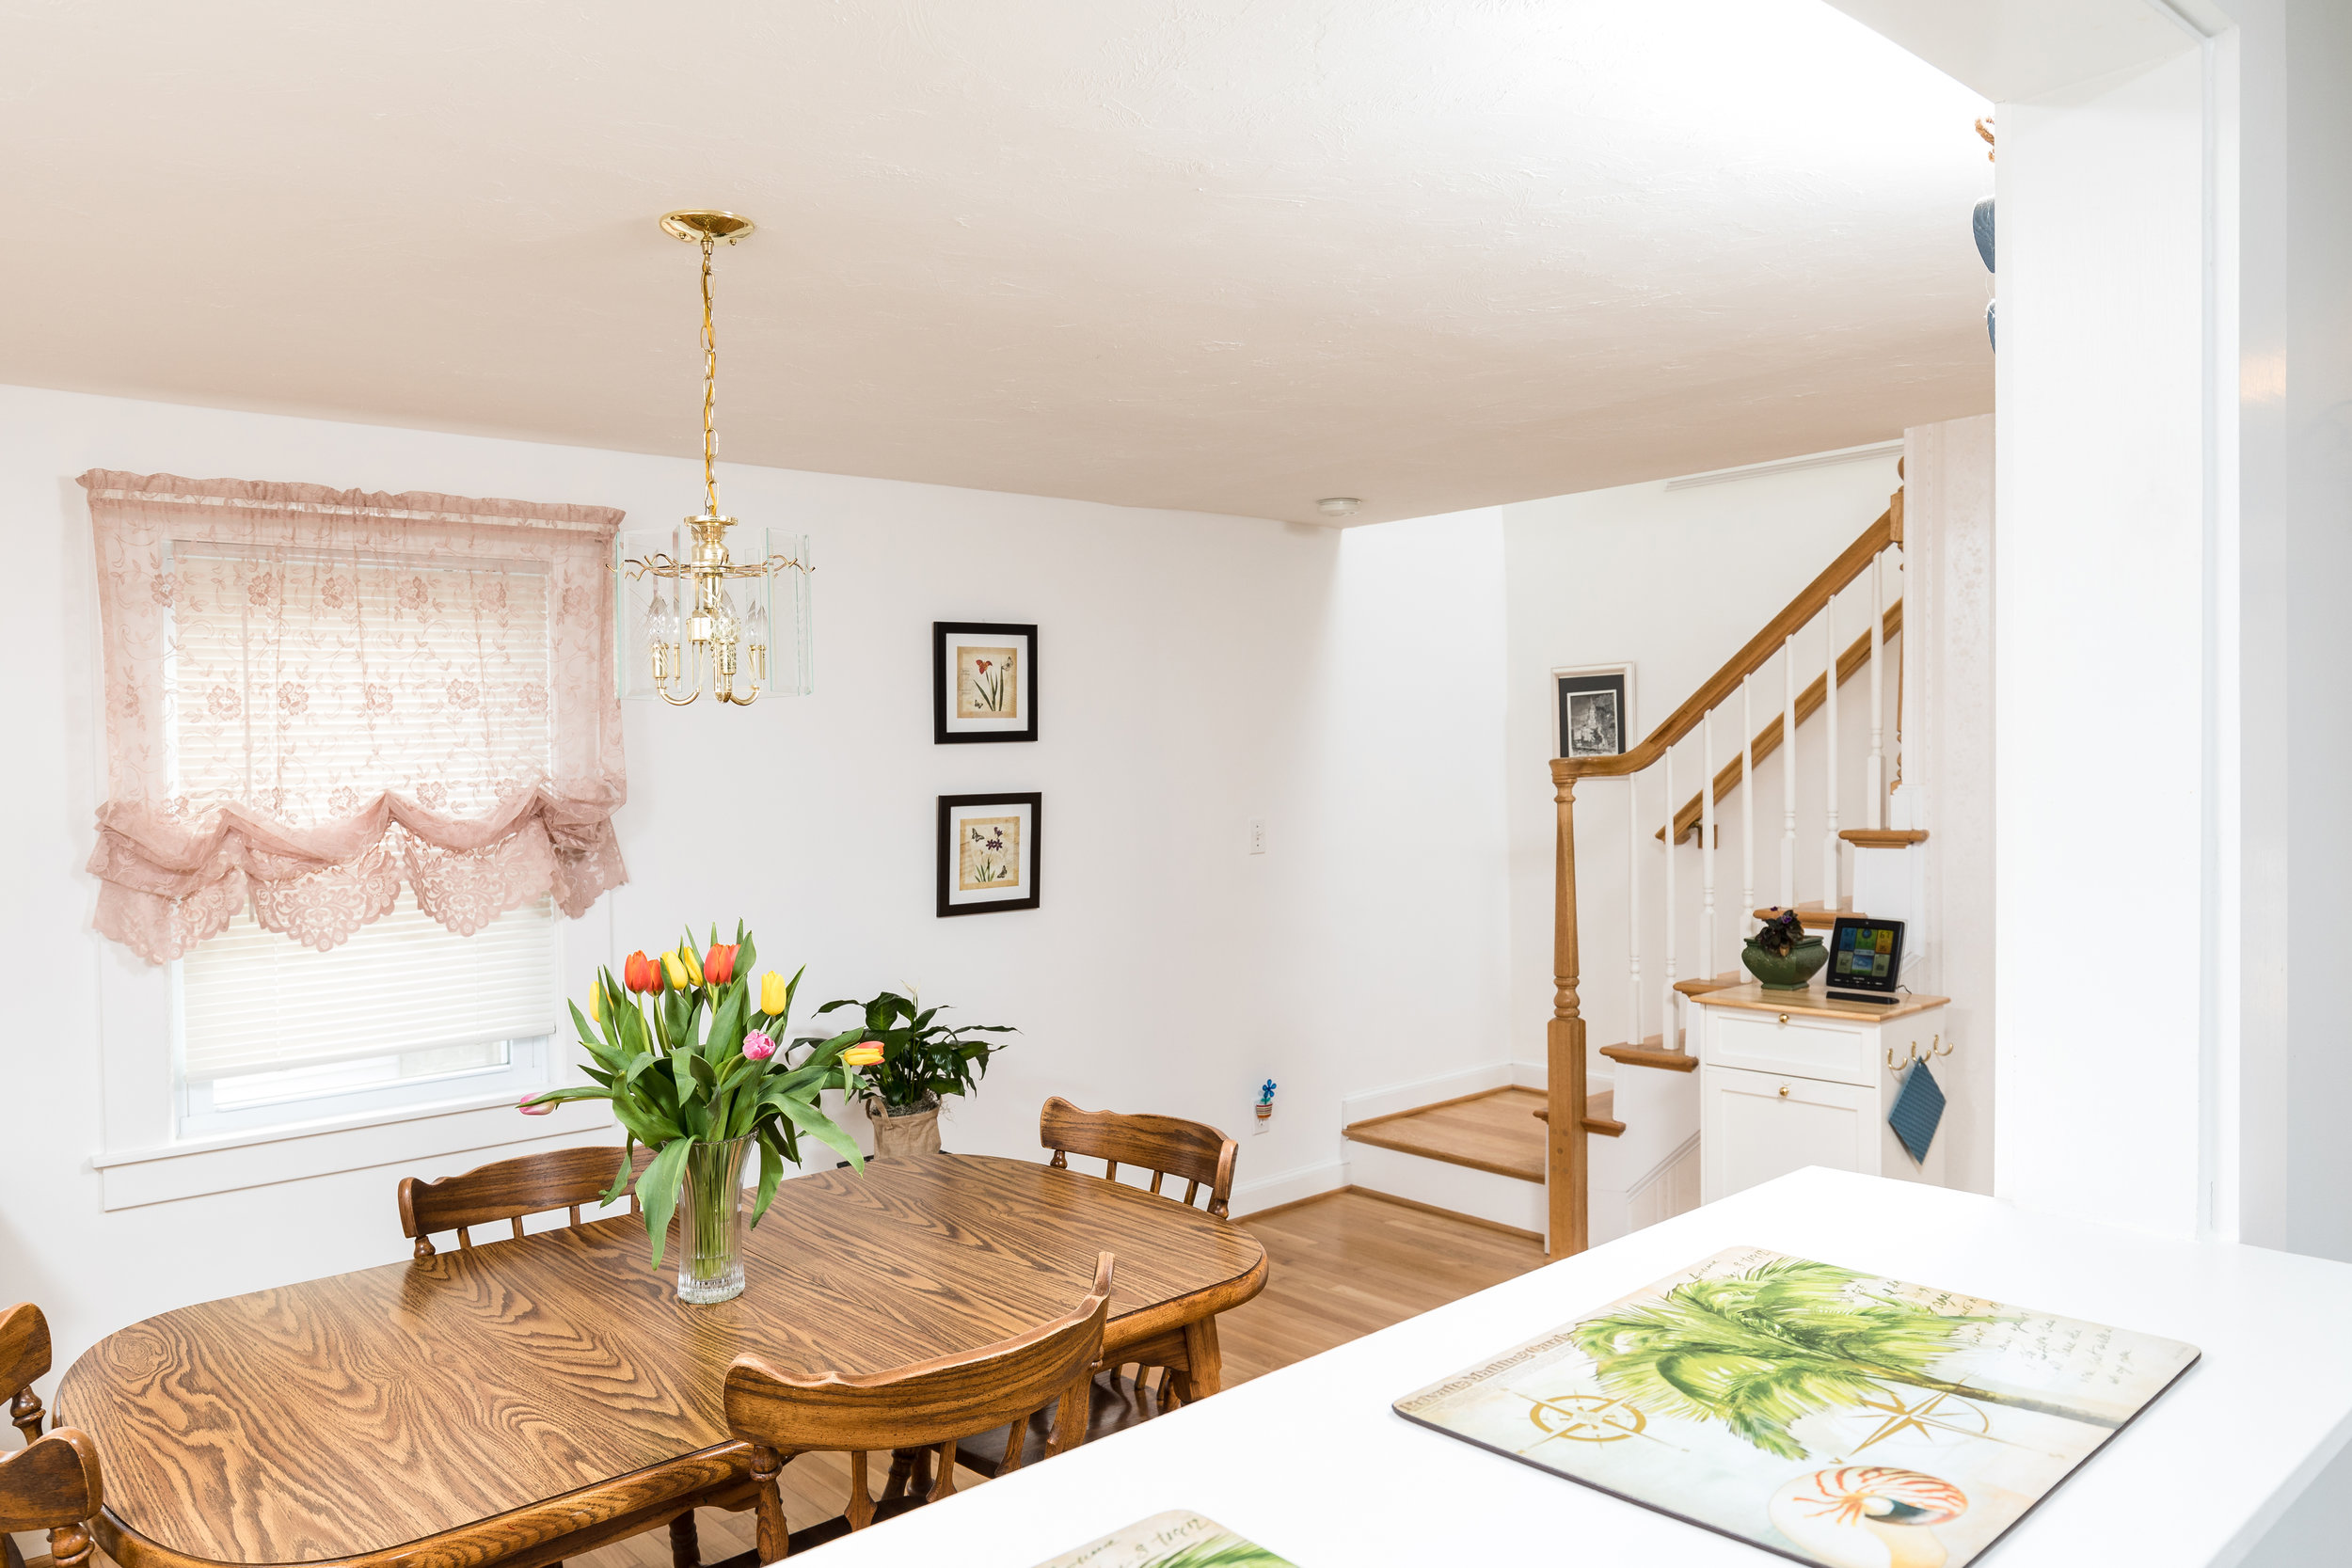 16 Lakeshore Drive - Click to View